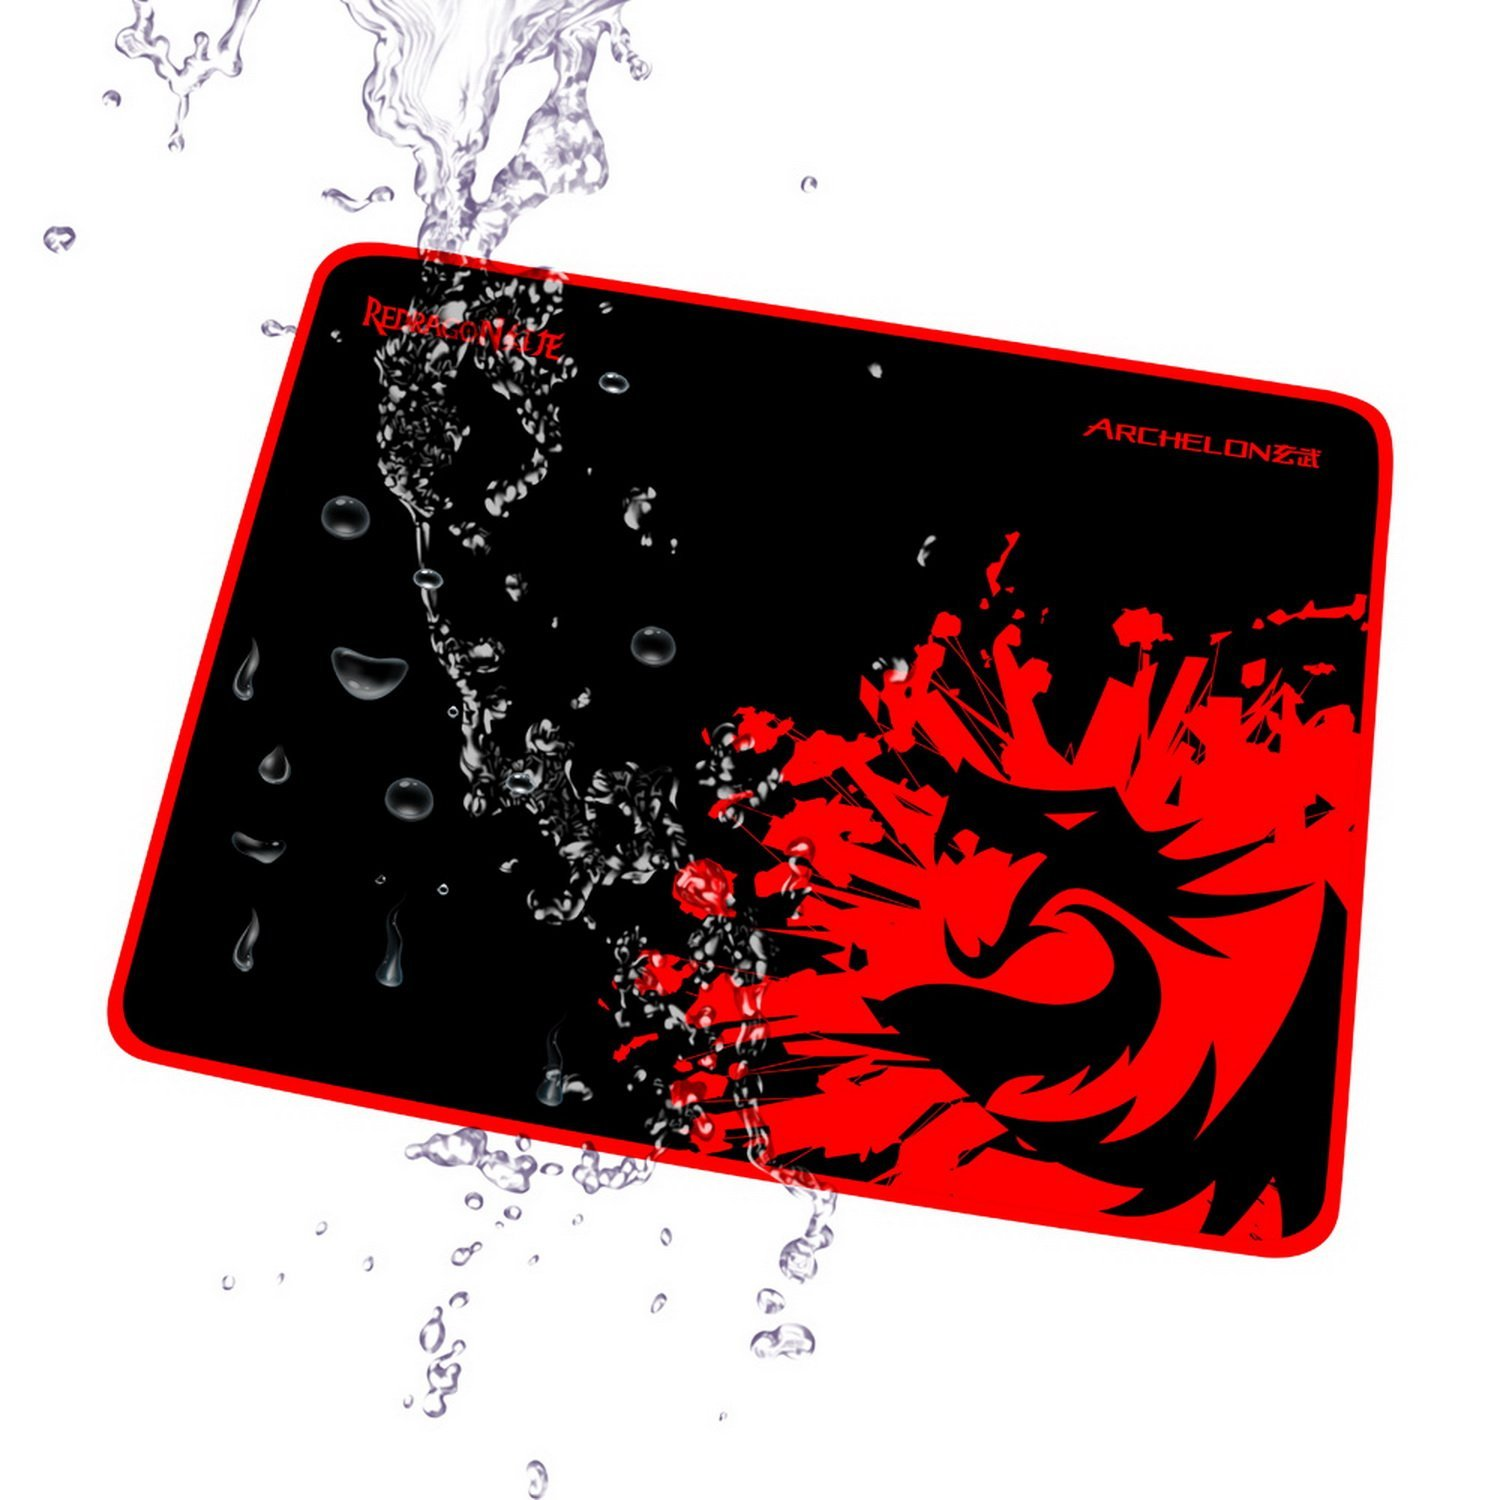 Redragon Archelon Ultra Thick Gaming Mouse Pad